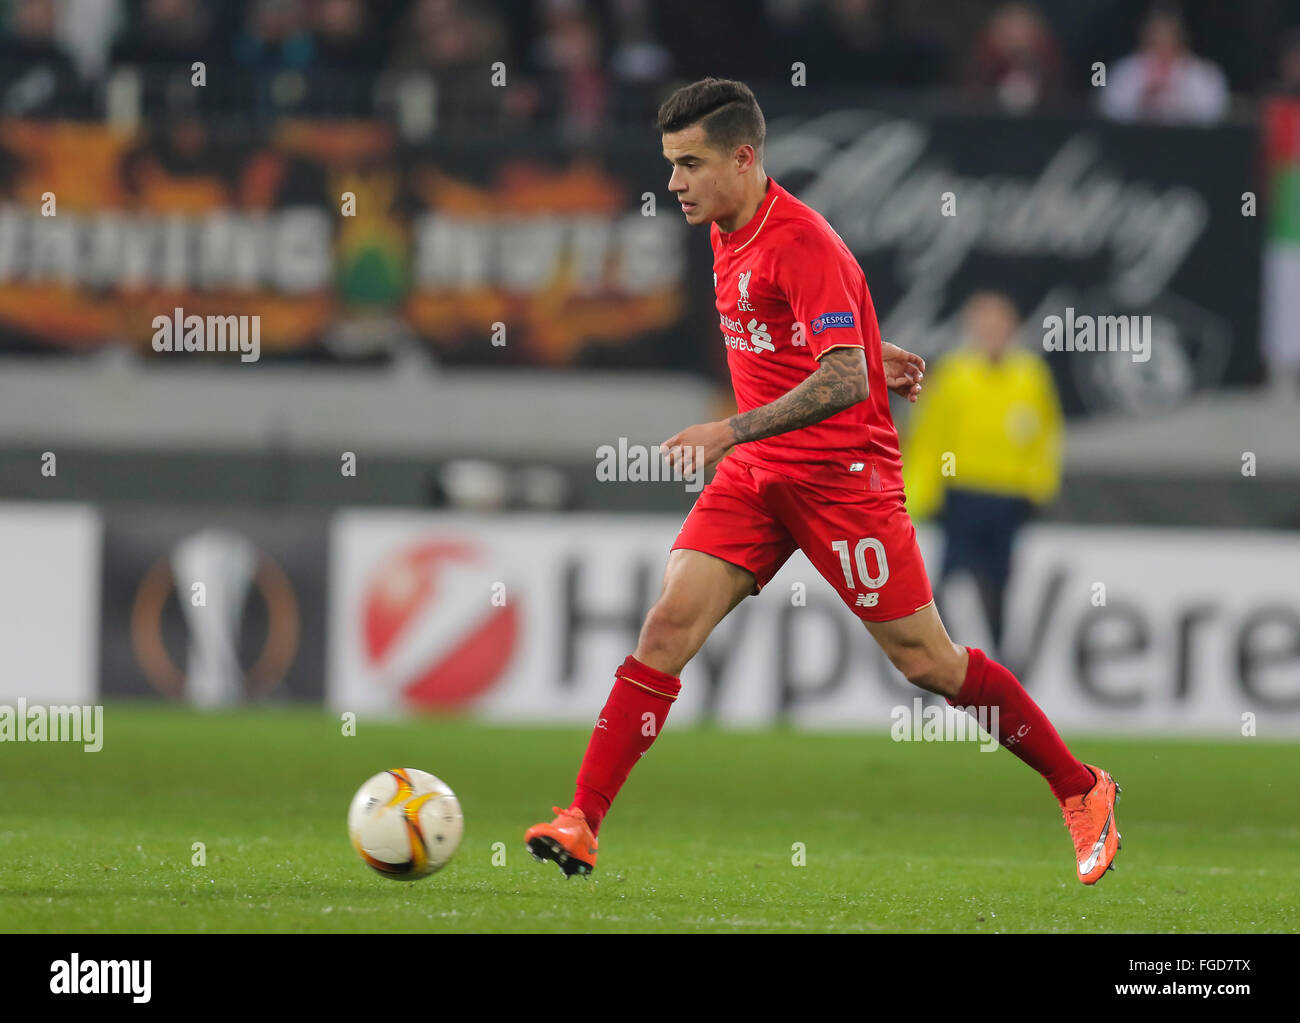 Augsburg Germany 18th February 2016 Philippe COUTINHO LIV 10